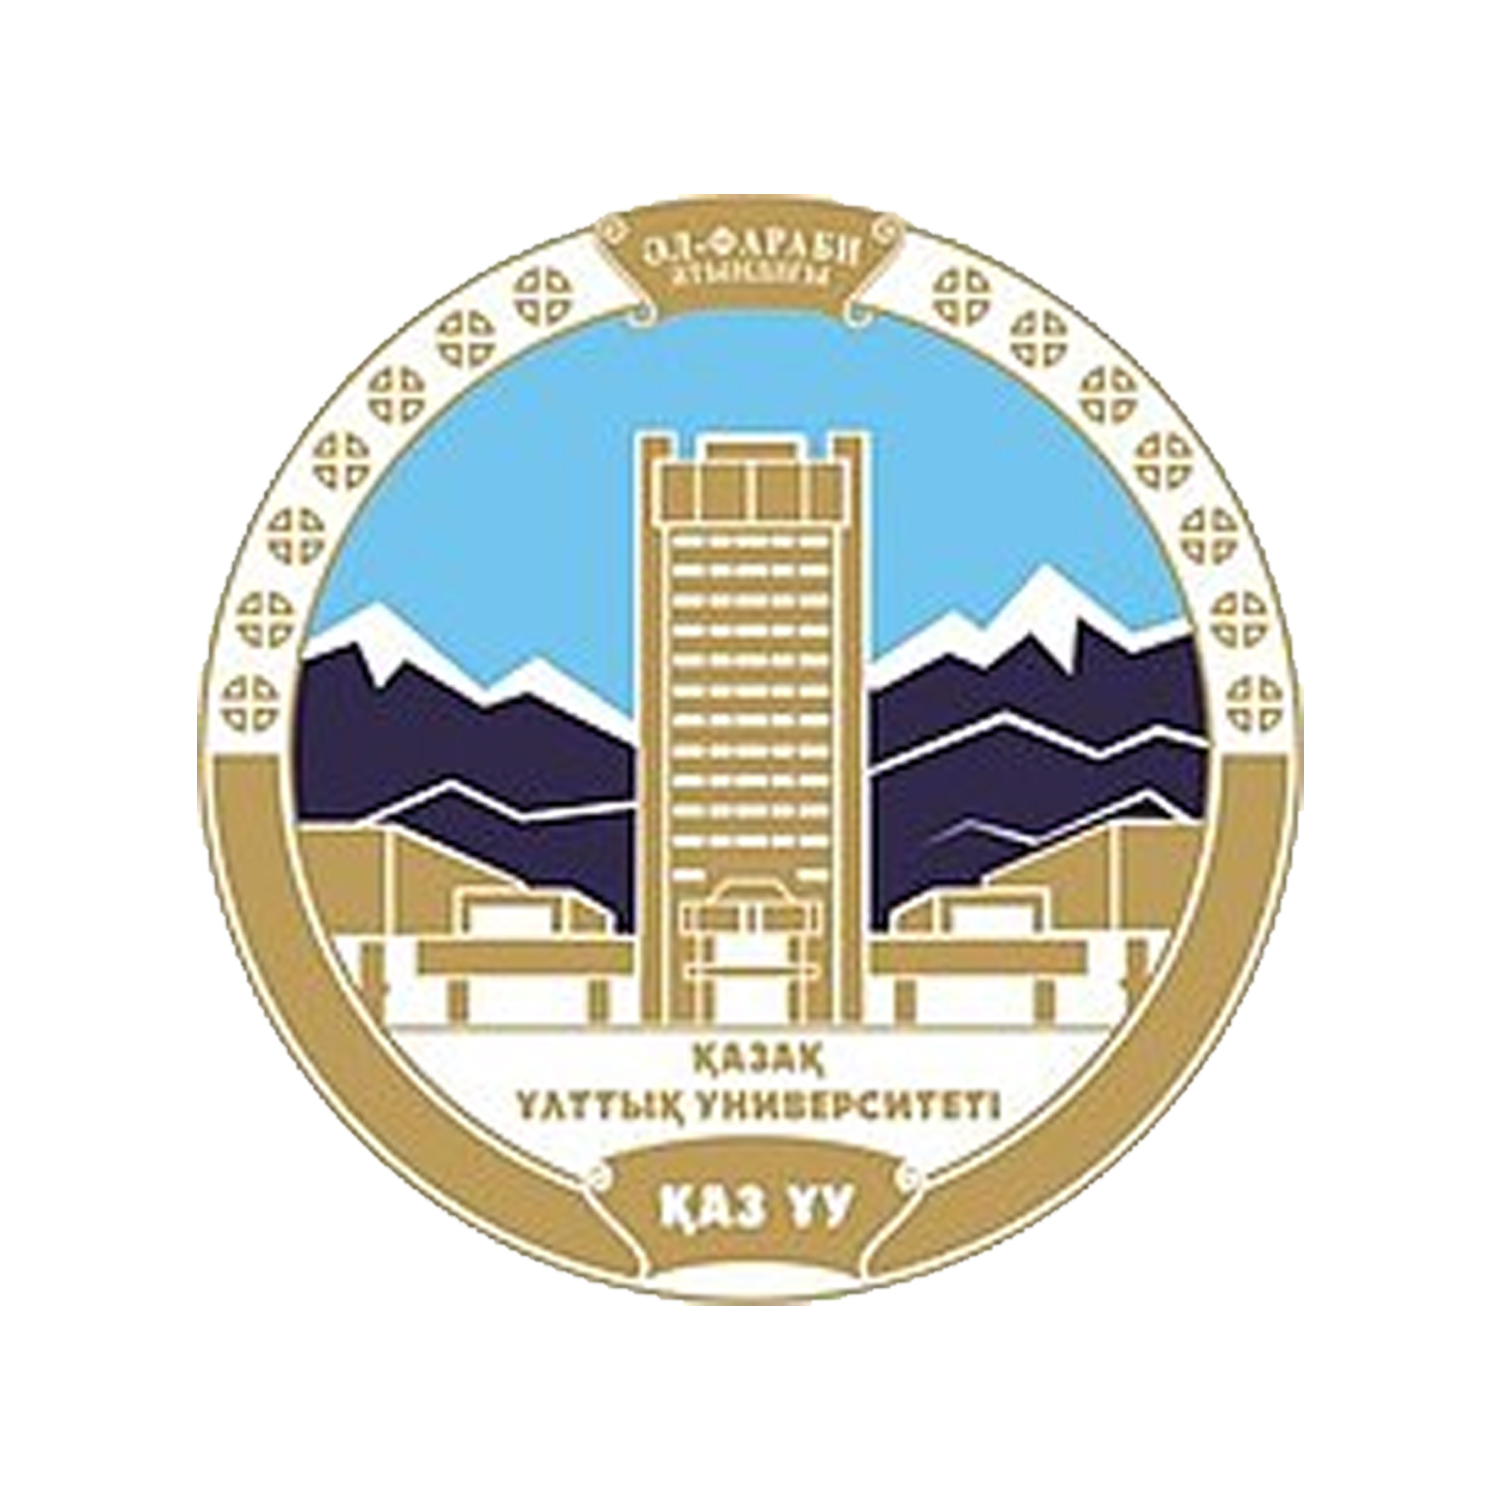 al farabi kazakh national university logo